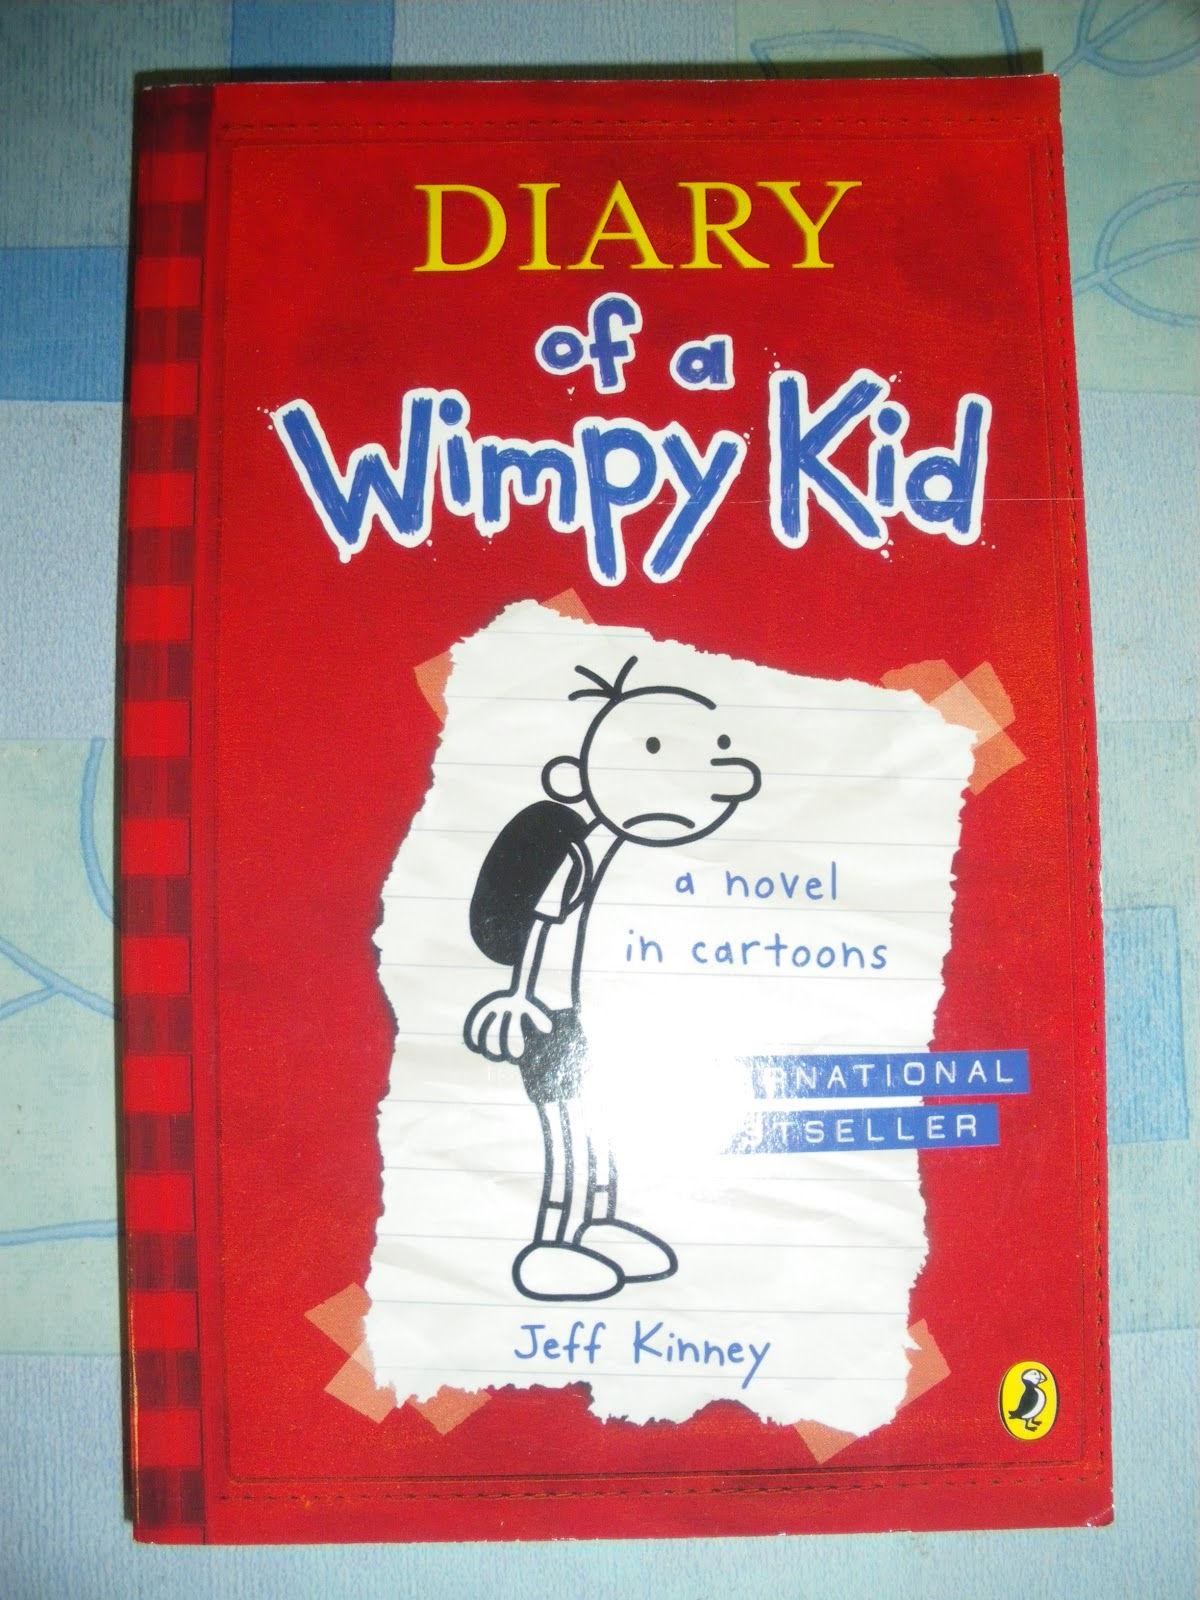 Brand New Trailer, Poster and Images for Diary of a Wimpy